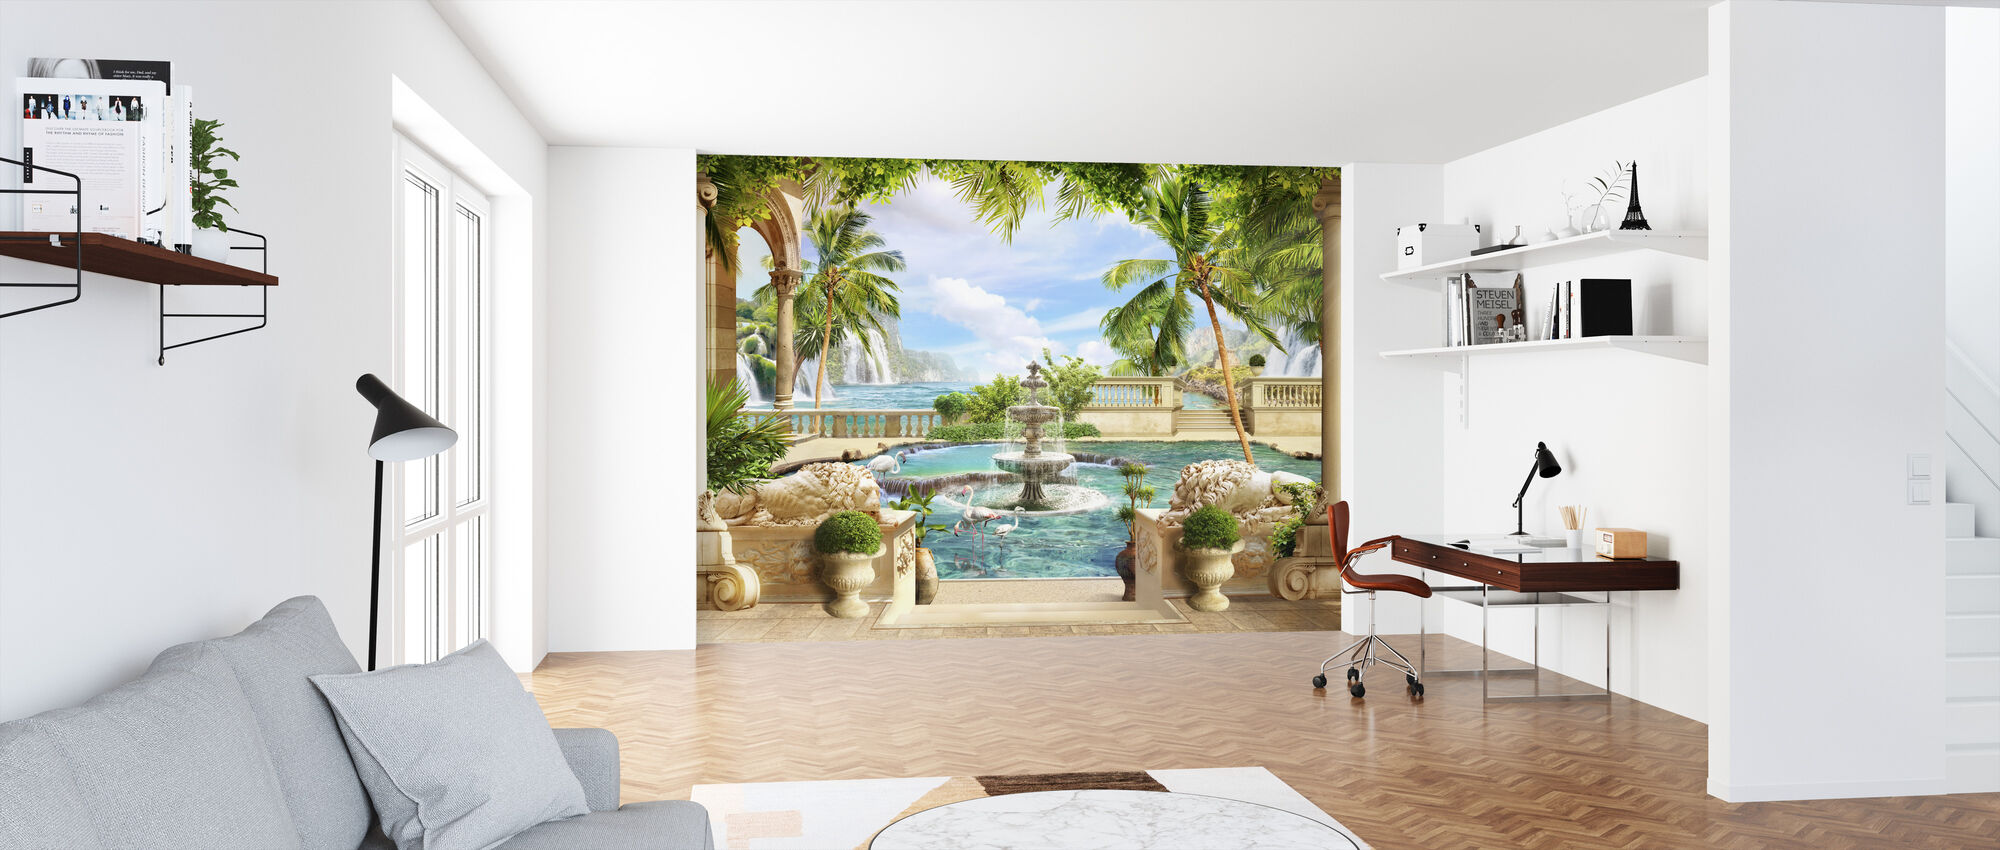 Fountain in Paradise - Wallpaper - Office